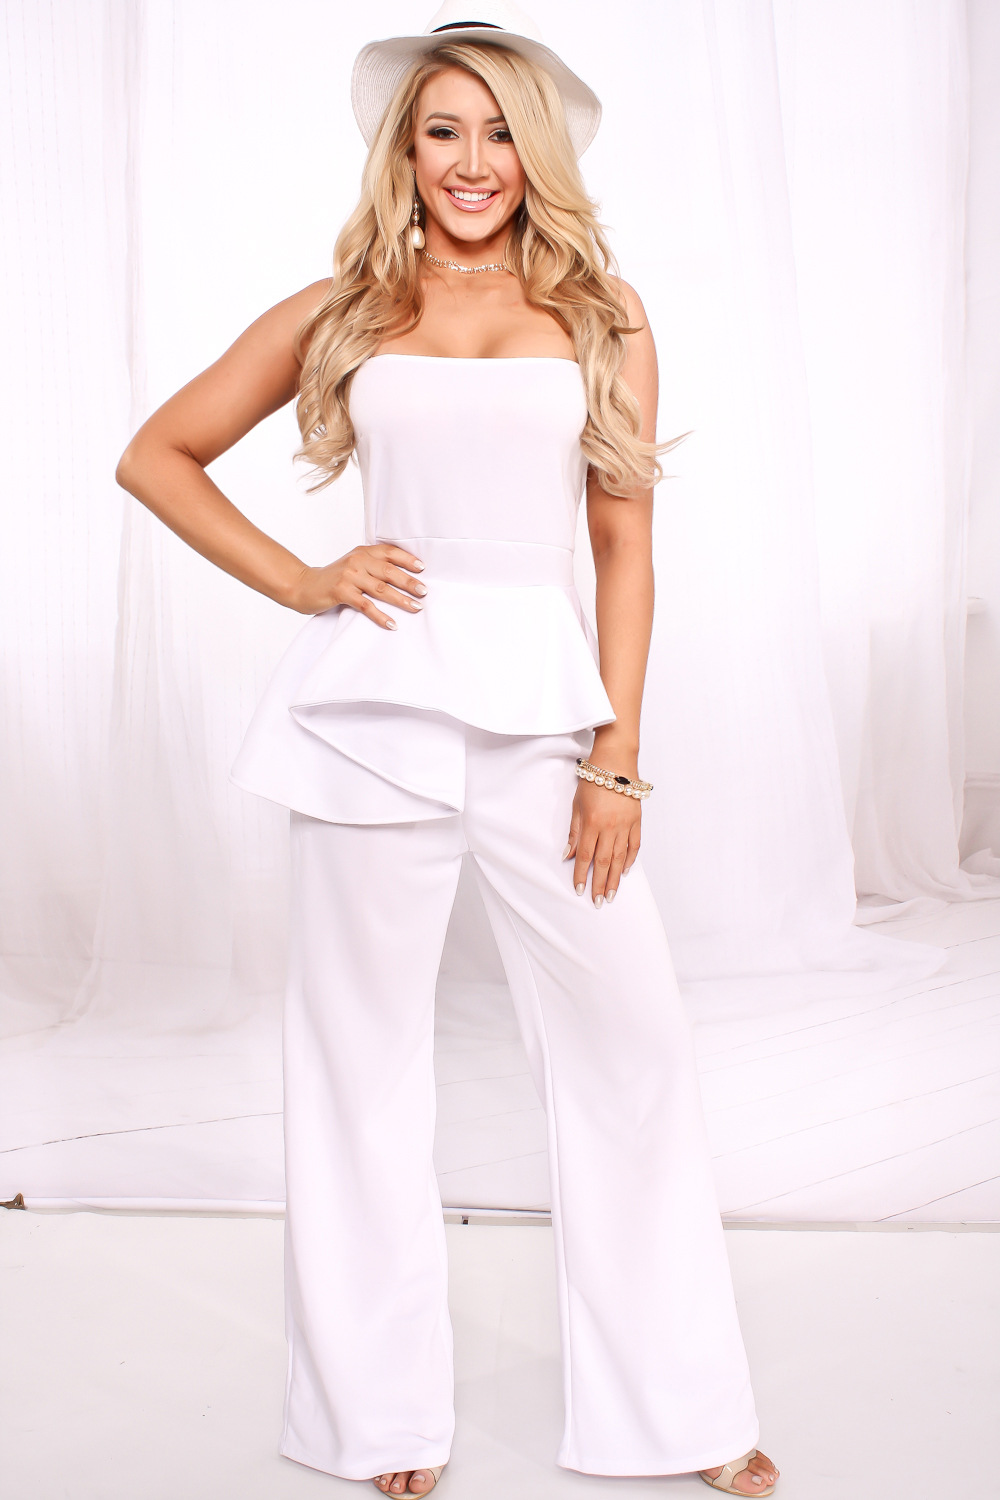 a9724bdd8dd Women Black White Peplum Jumpsuits Sexy Off Shoulder Strapless Club  Jumpsuits Nightout Wear Backless Full Length Jumpsuits-in Jumpsuits from  Women s ...